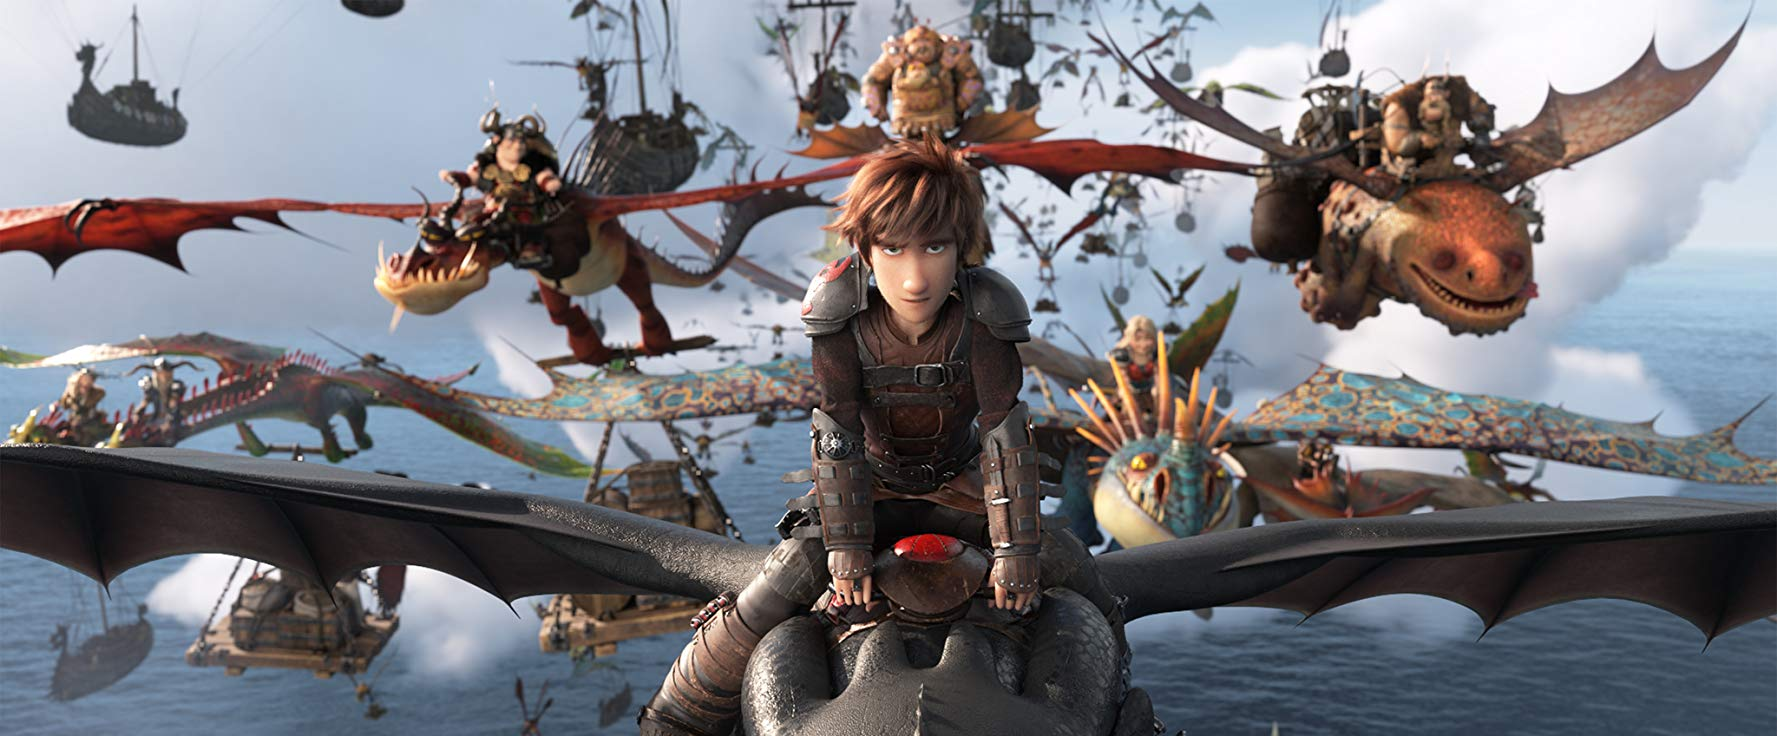 Hiccup Horrendous and the population of Berk - Dragon Trainer The hidden world